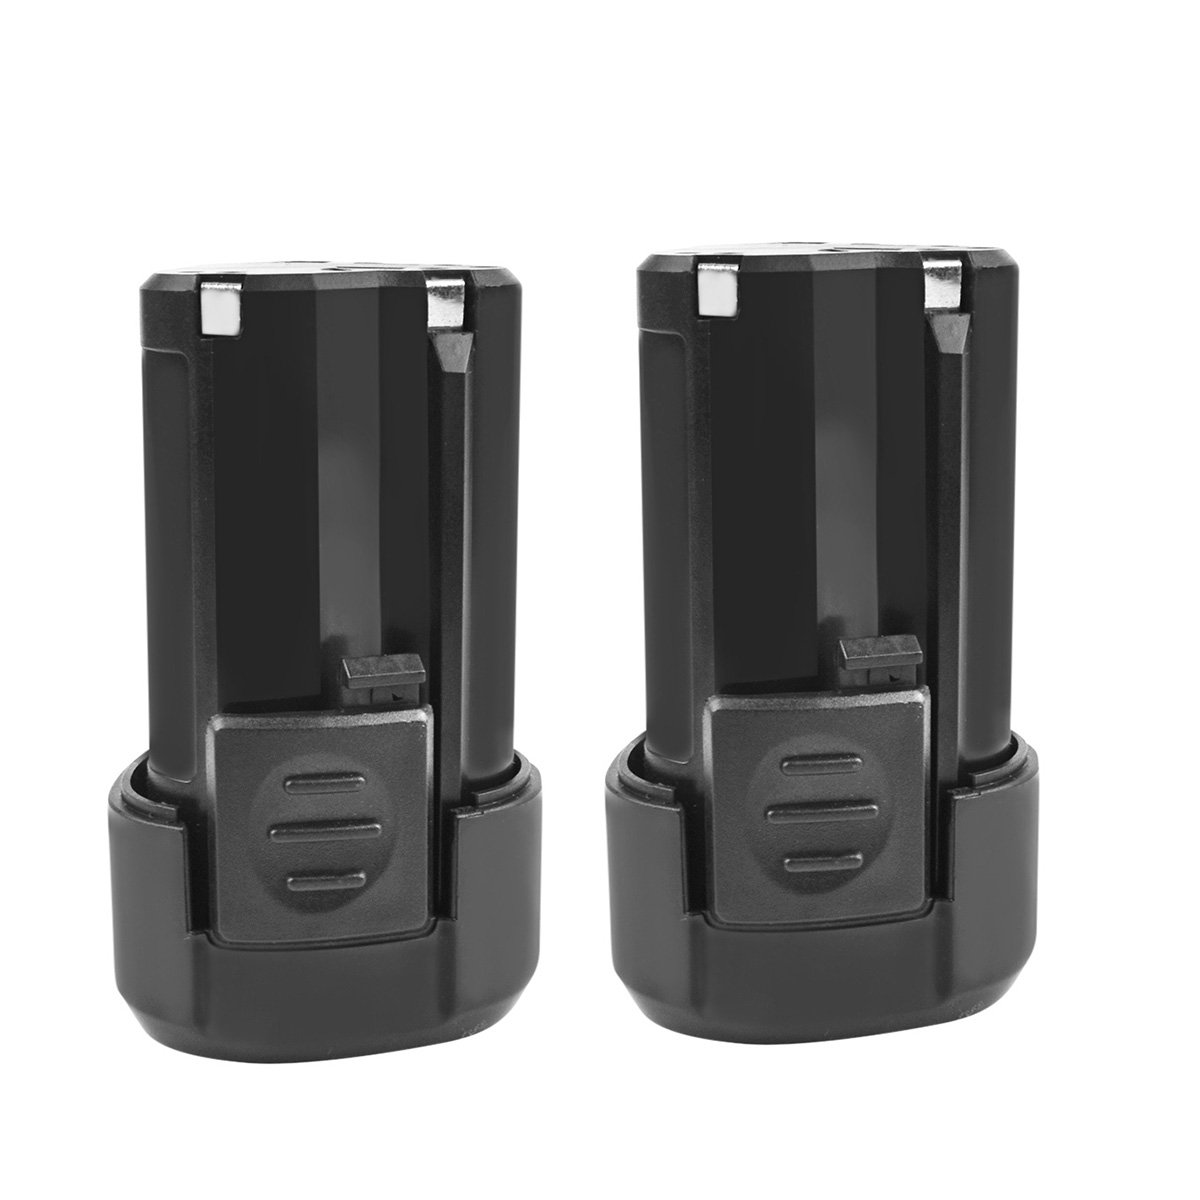 Bonacell 2 Pack 12V 2000mAh Lithium ion Replacement Battery Comaptible with Rockwell RW9300 WA3503 WA3504 WA3505 Power Tools 12V Battery